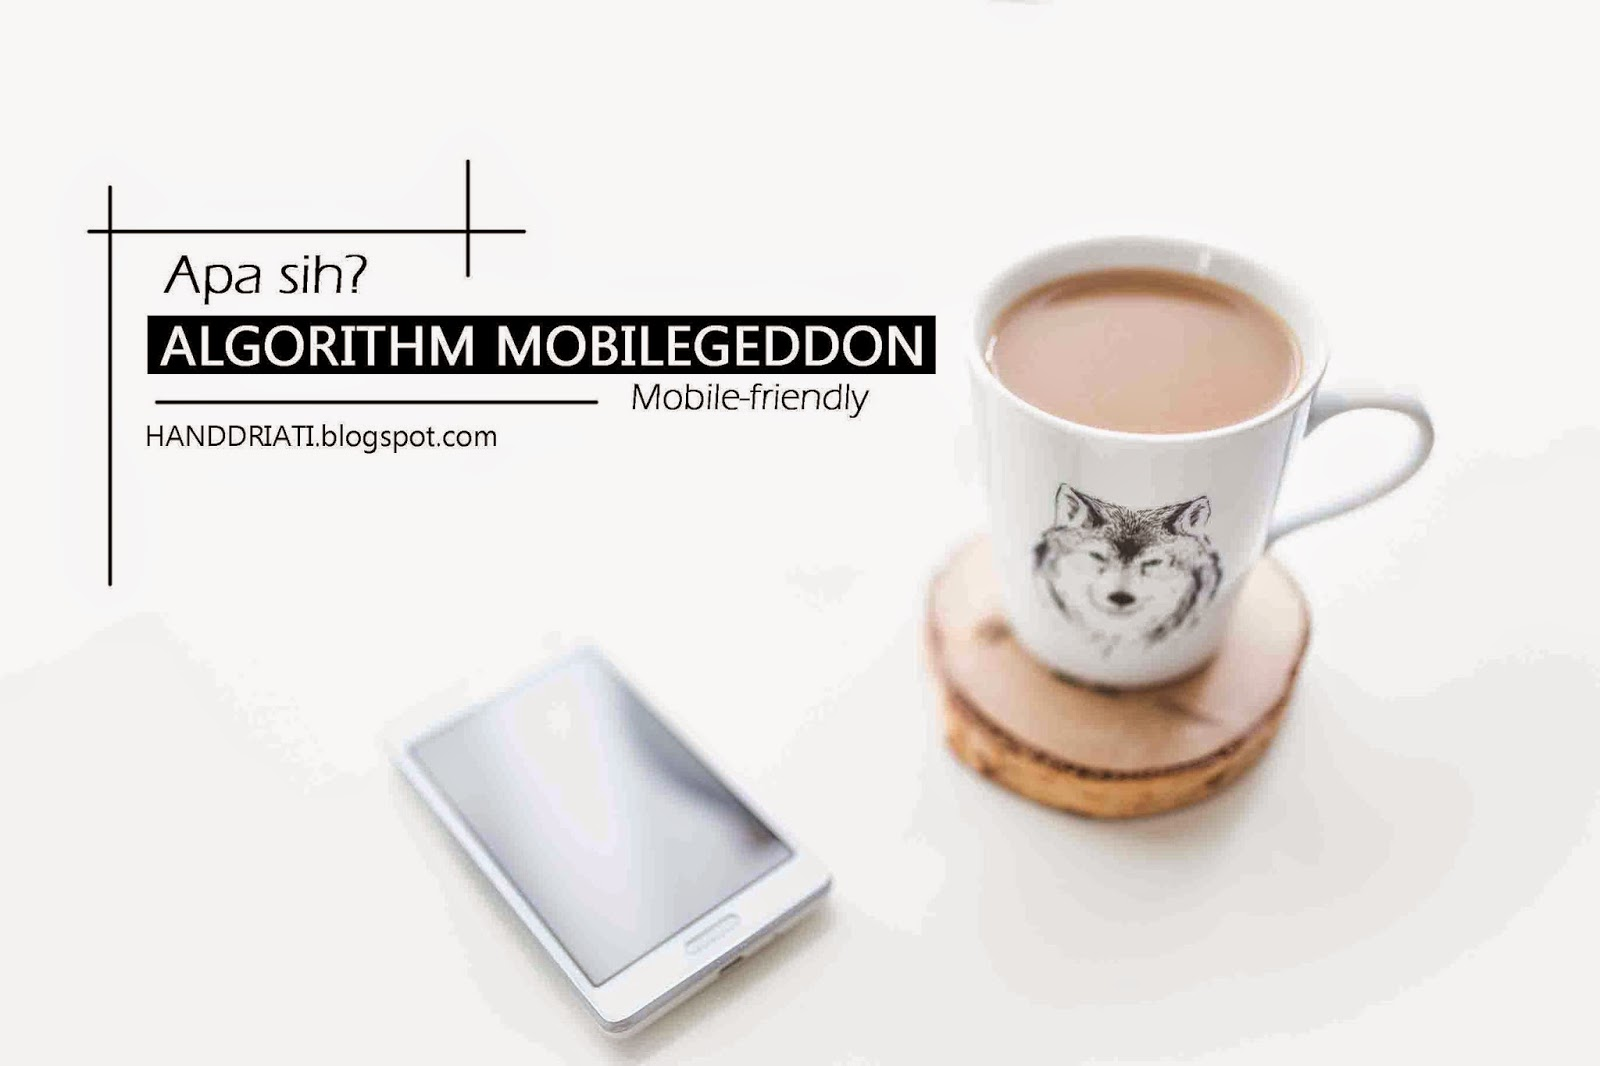 Apa sih Algorithm Mobilegeddon - mobile friendly_What is Algorithm Mobilegeddon